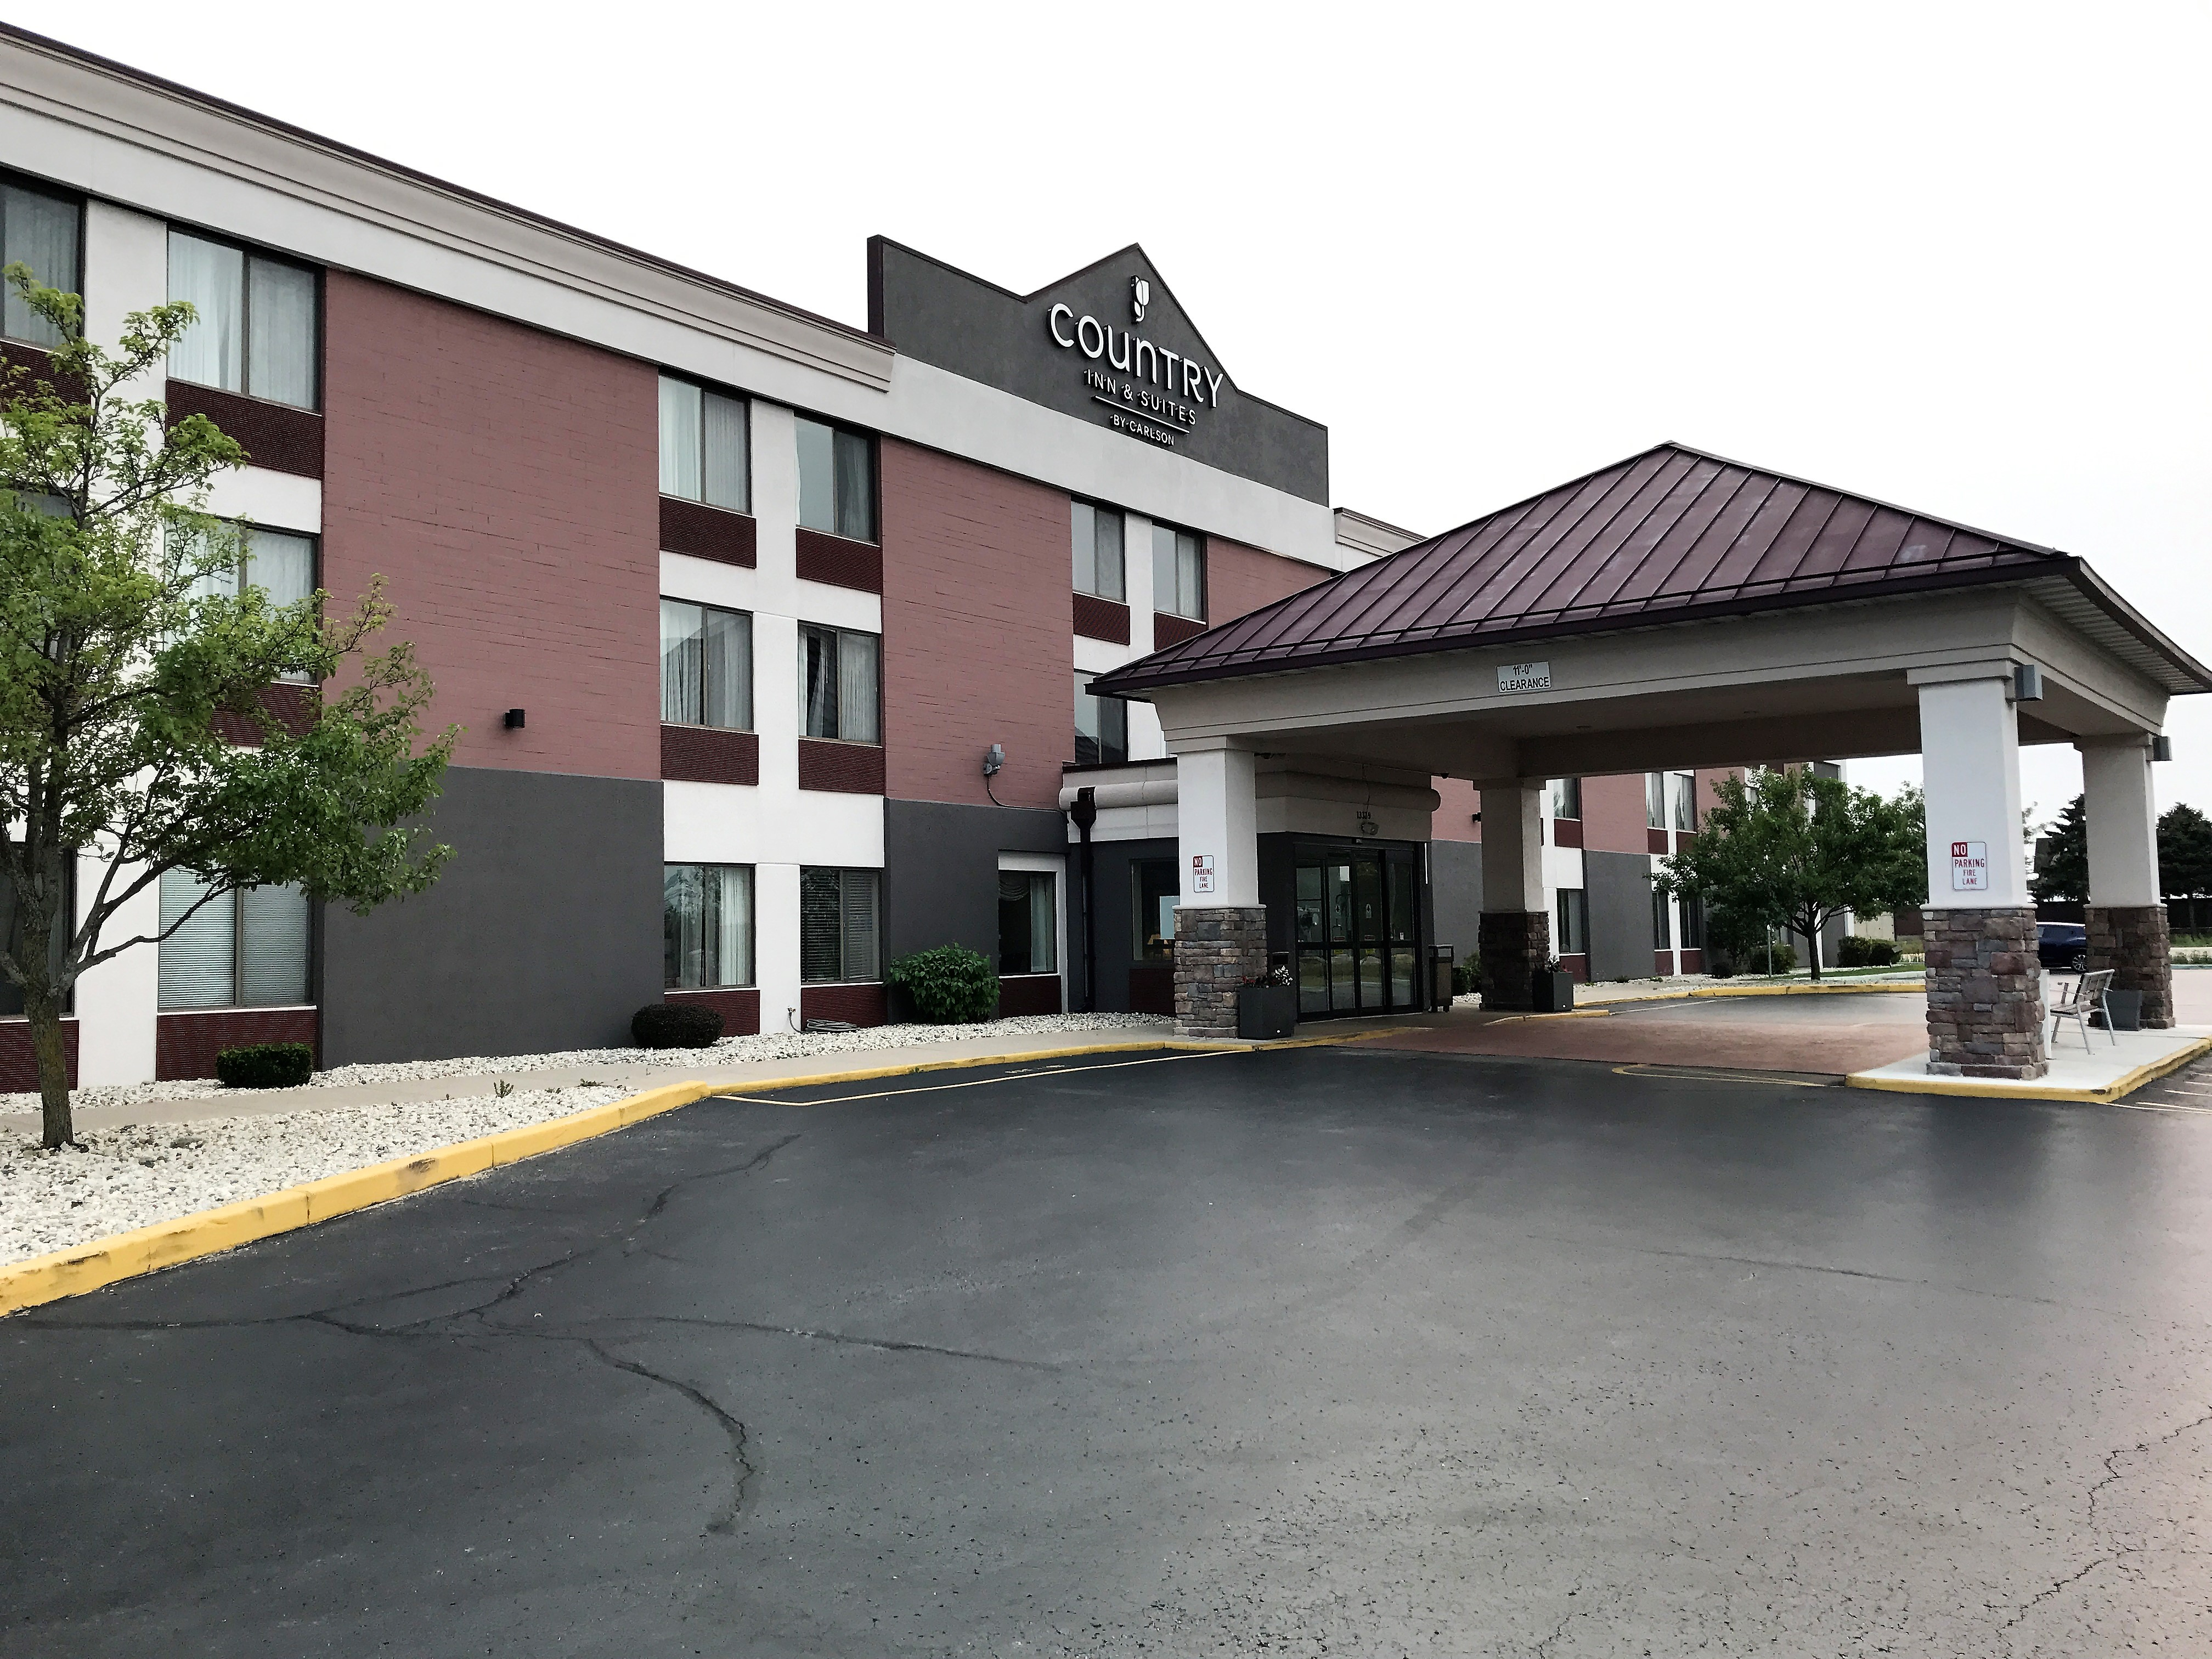 Country Inn & Suites by Radisson, Mt. Pleasant-Racine West, WI image 0